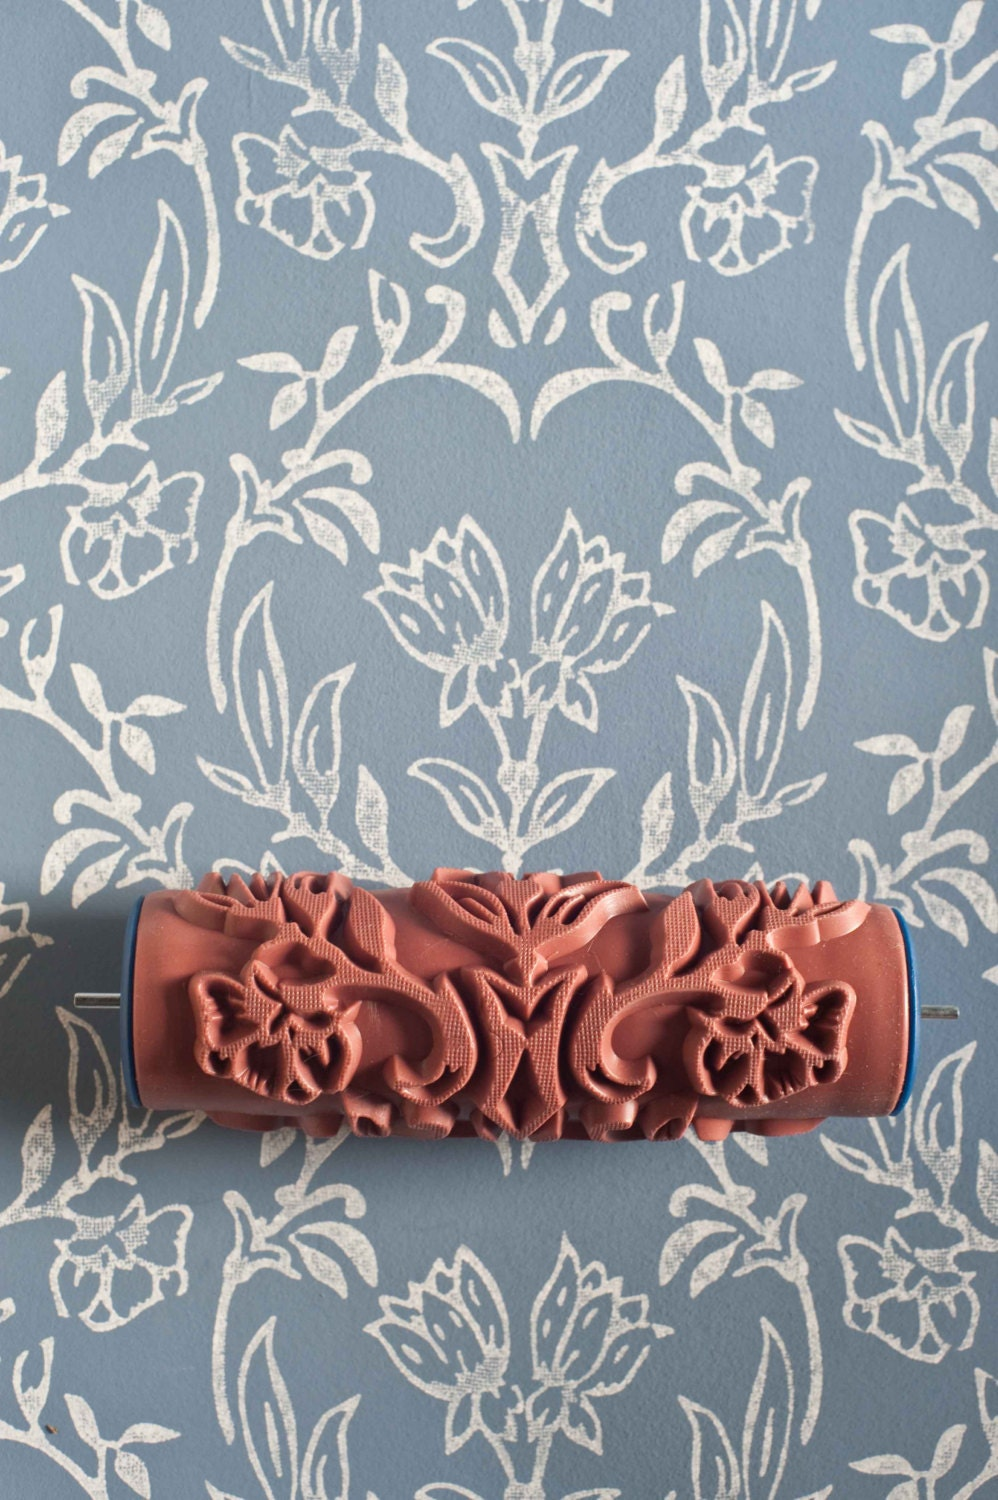 Where Can I Buy Patterned Paint Rollers Cool Design Inspiration